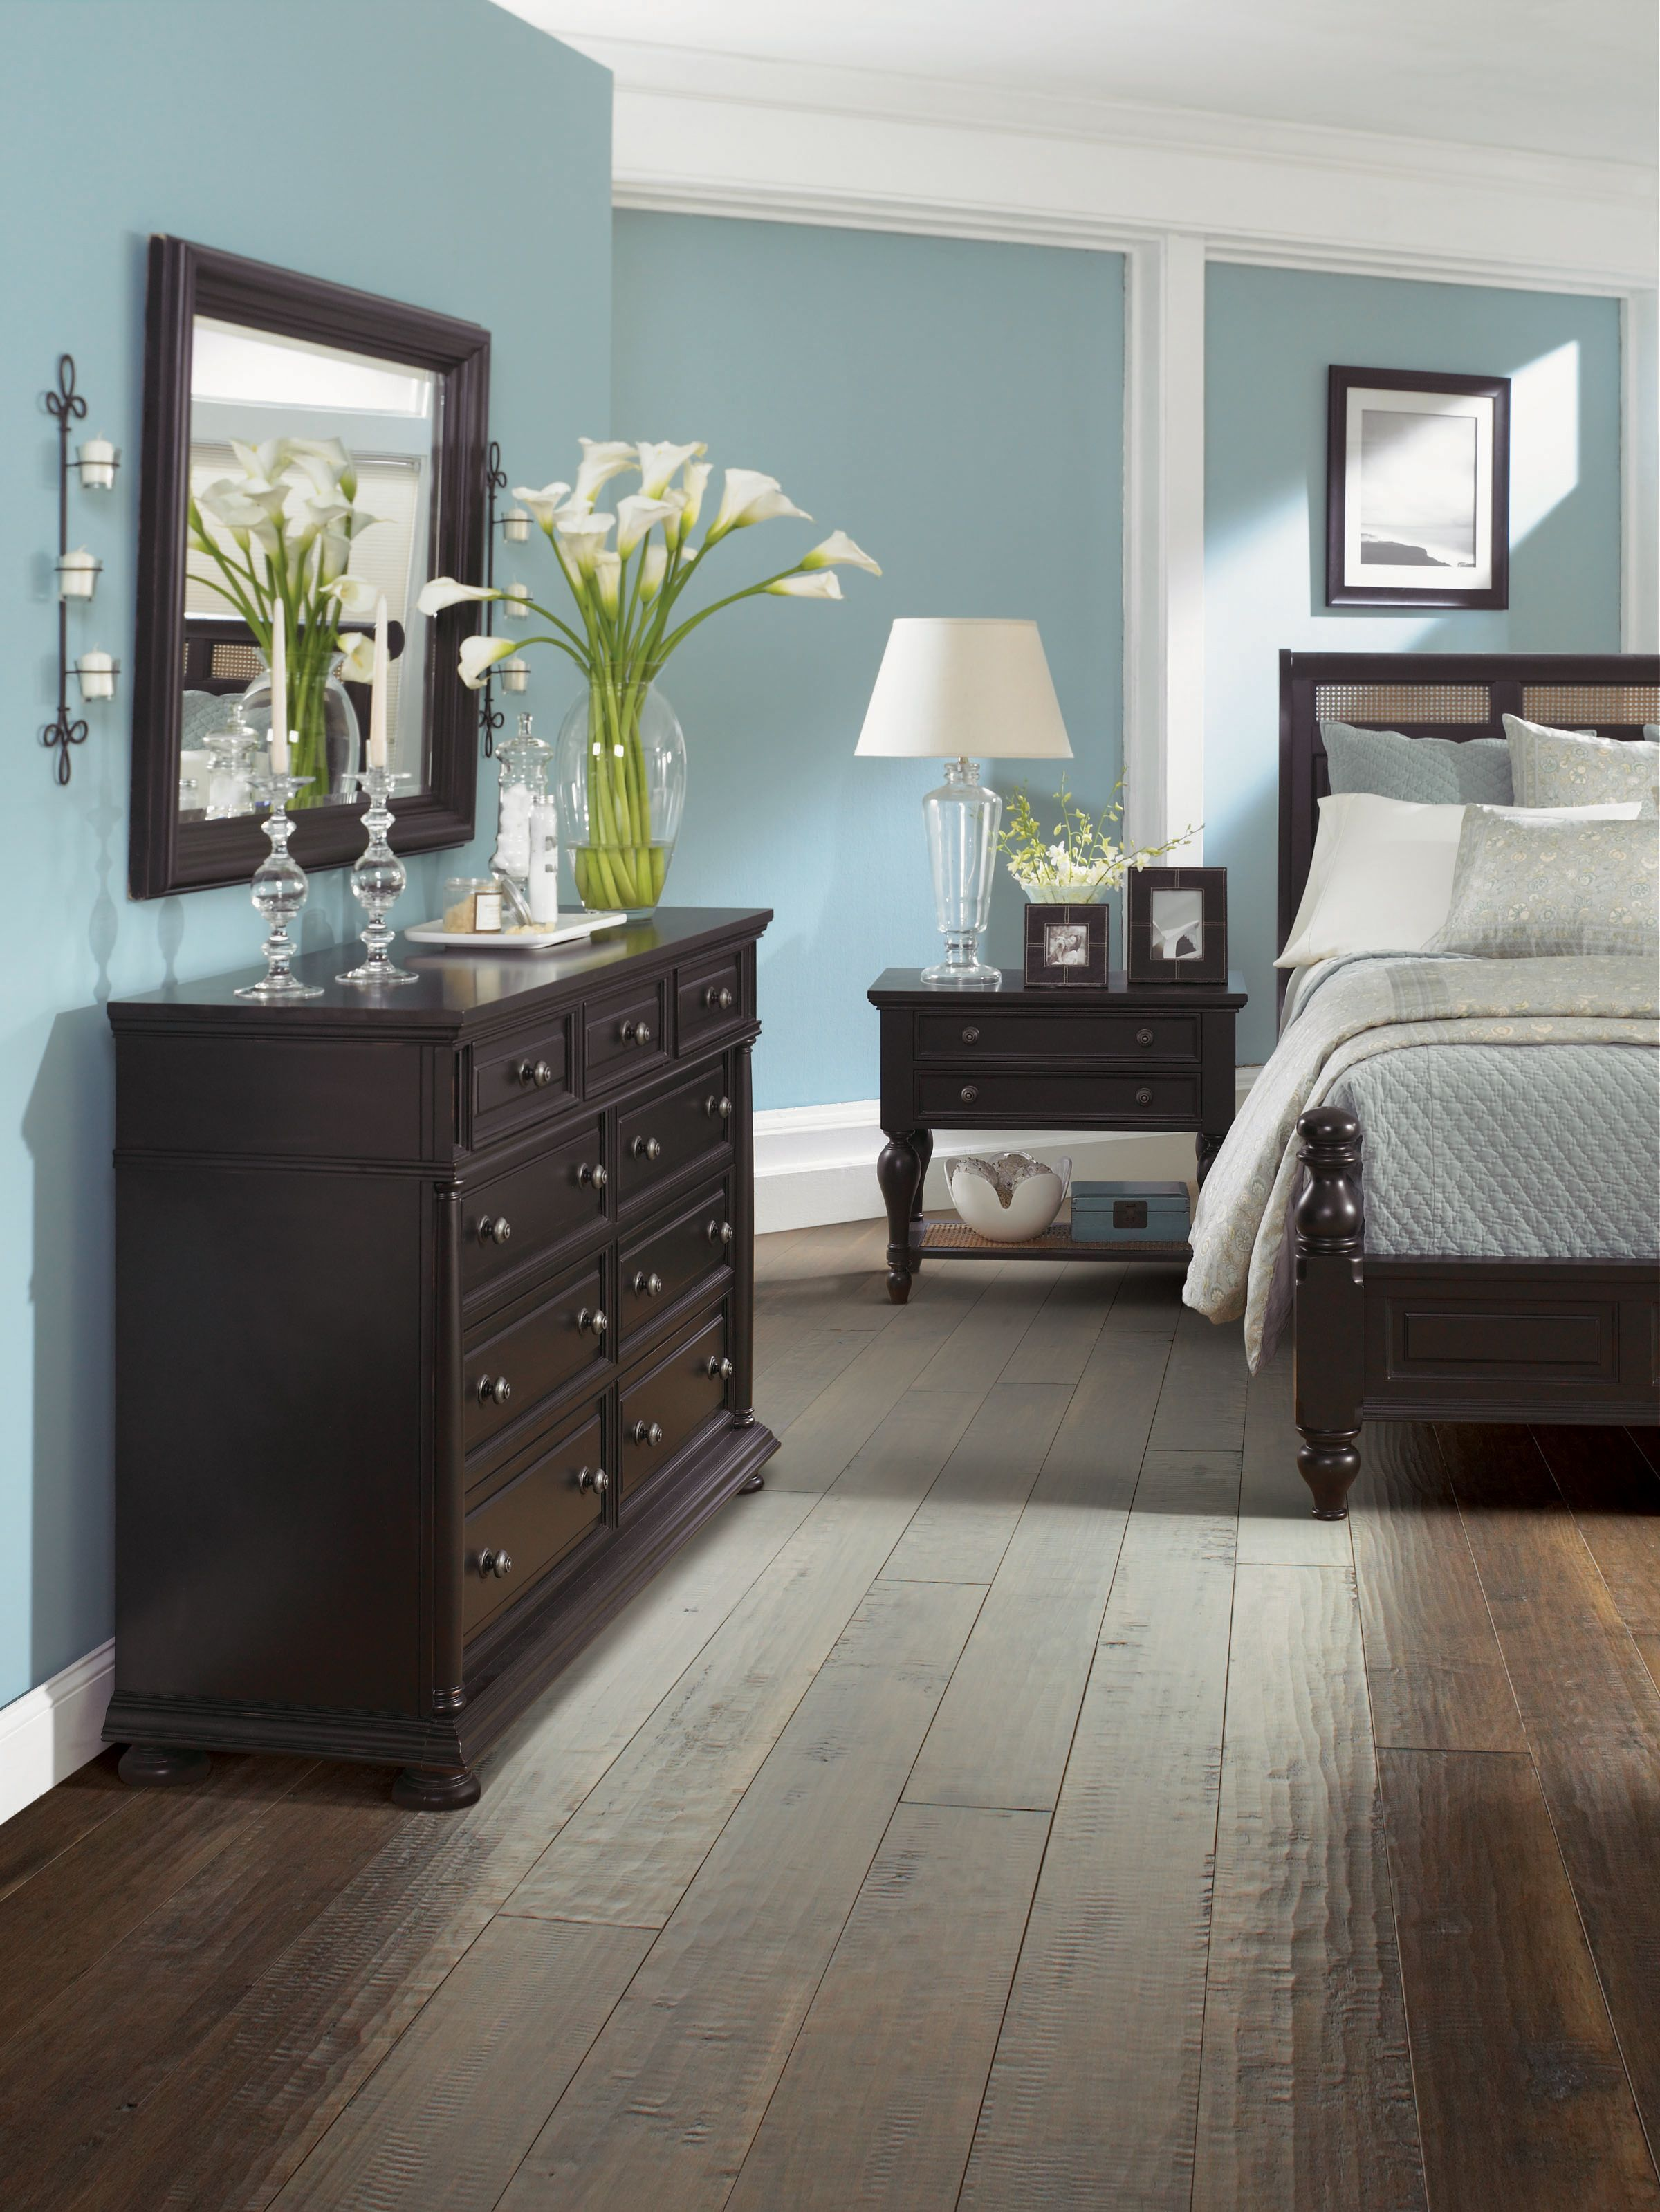 Paint Color That Goes With Dark Wood Furniture